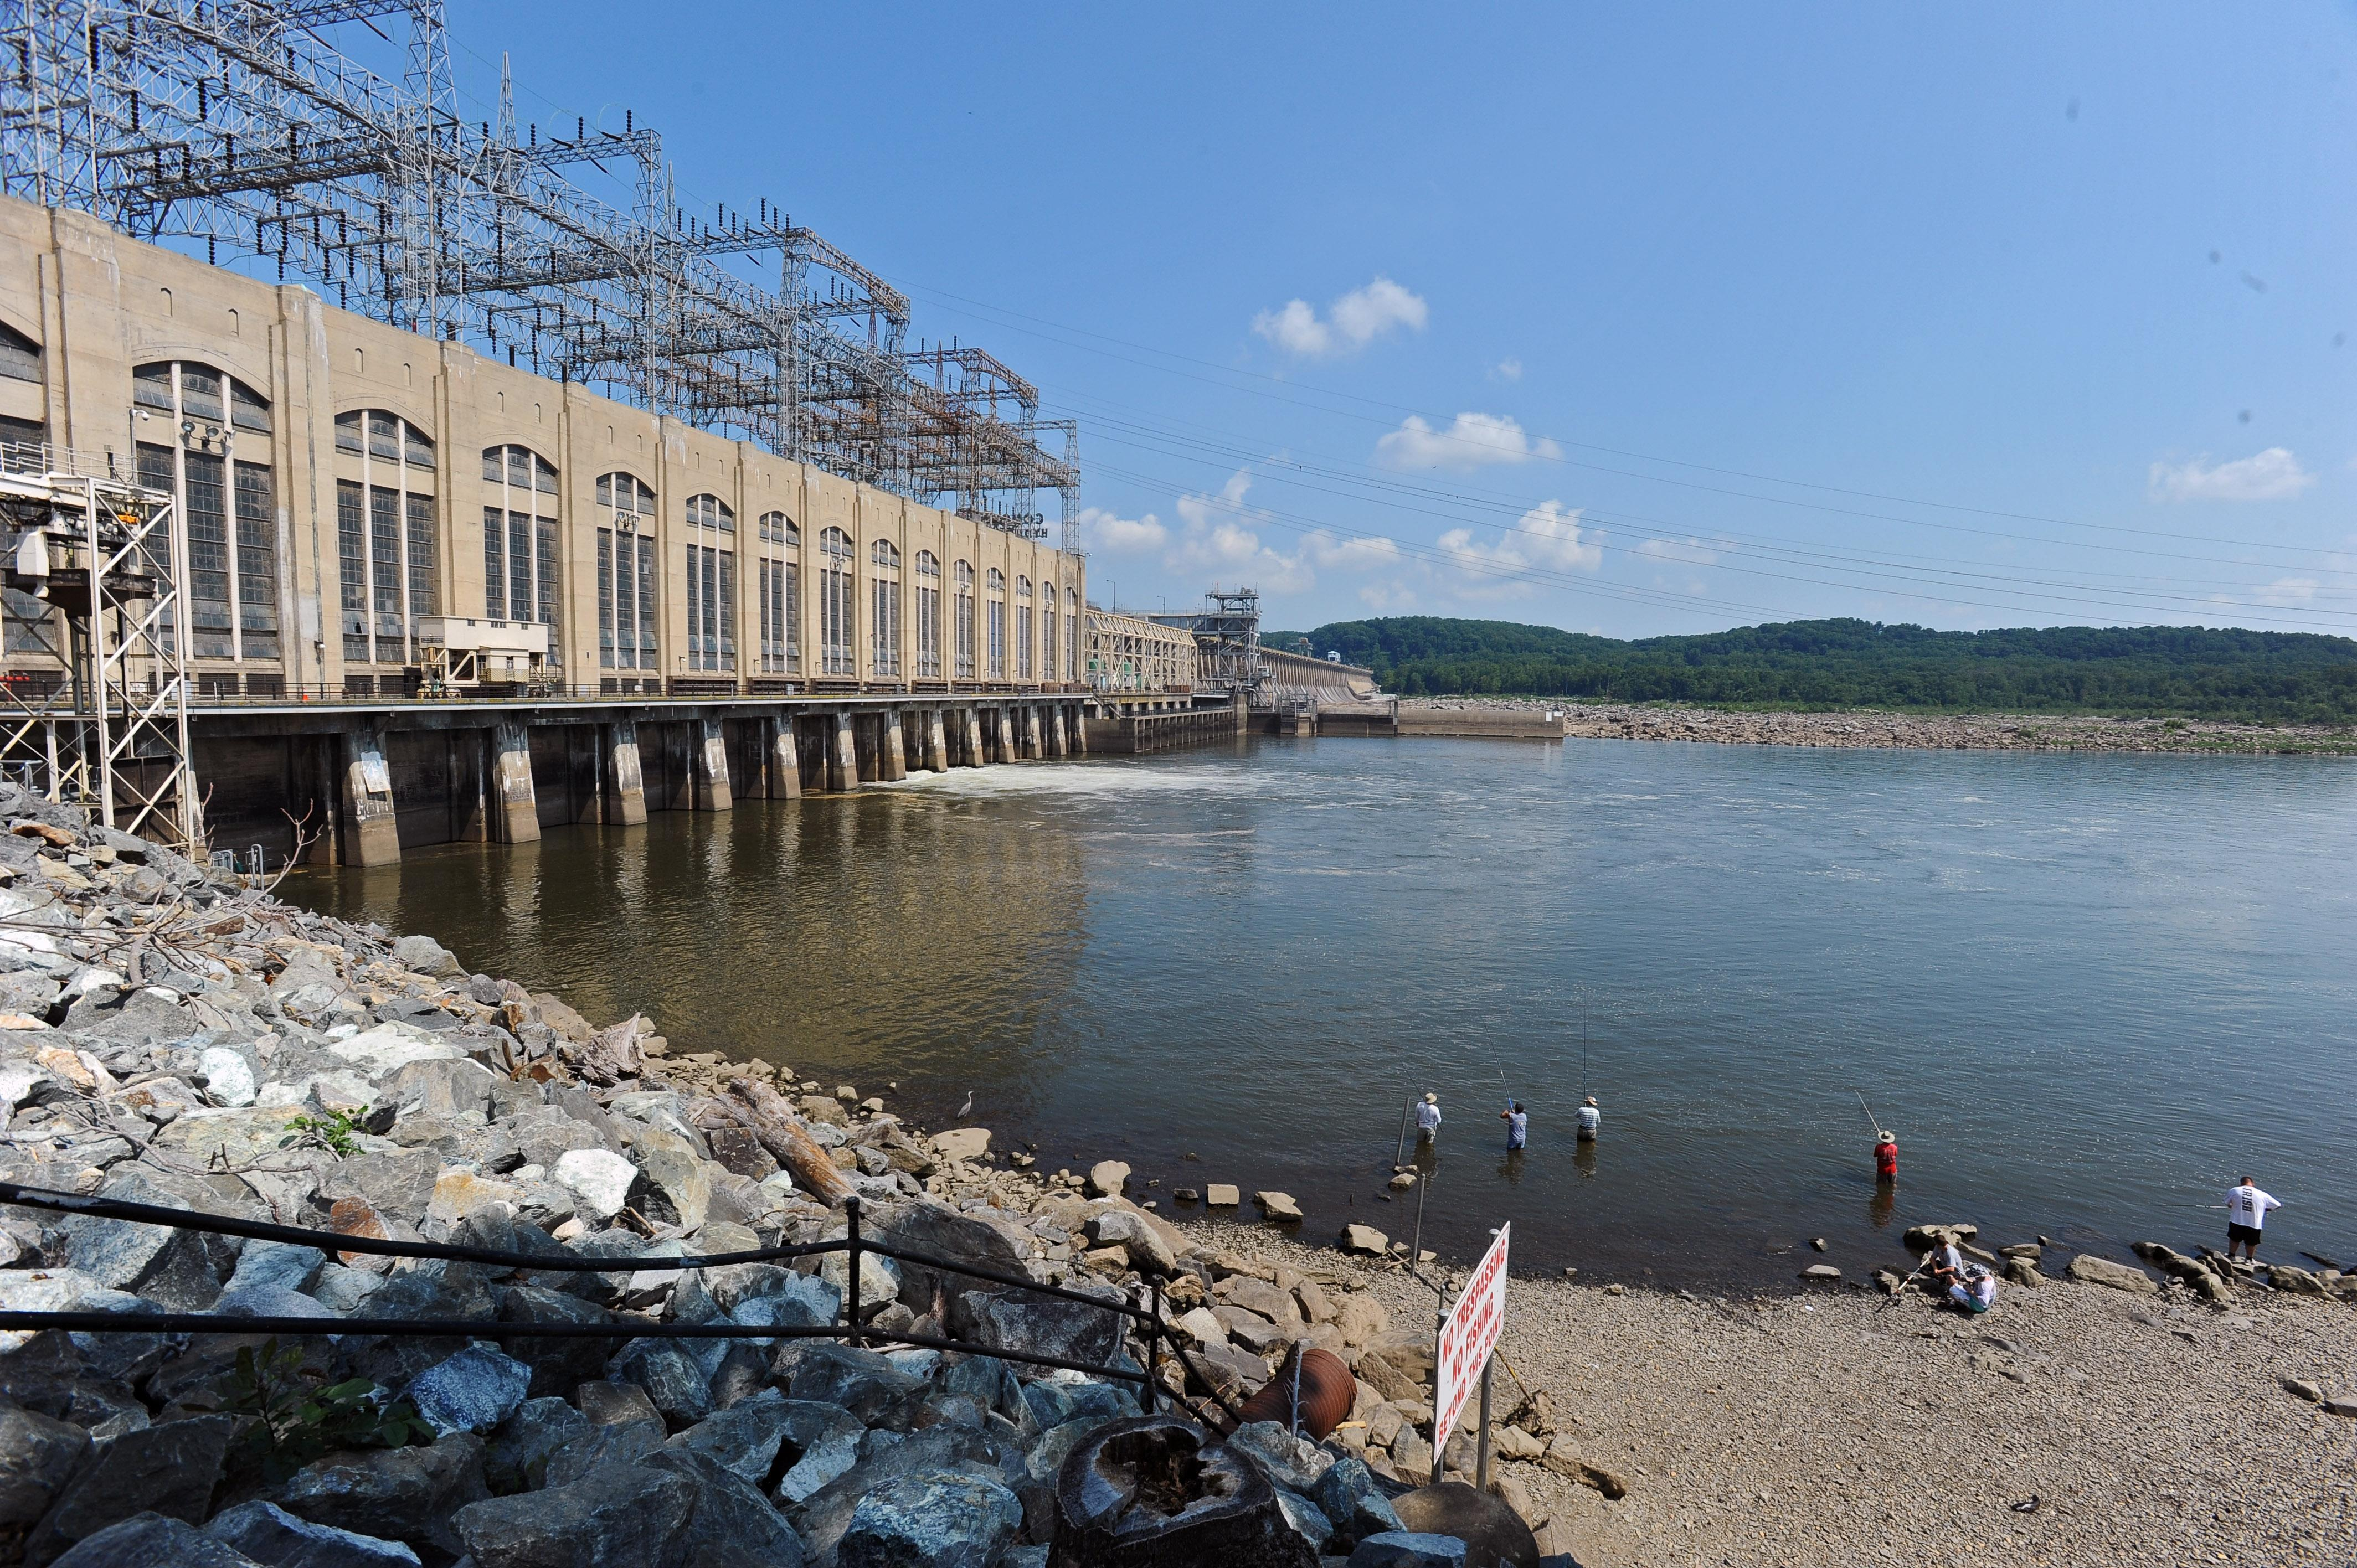 Scientists and environmental activists are concerned that silt and nutrient pollution attached to the sediment buildup at the Conowingo Dam, pictured, could undermine efforts to restore the Chesapeake Bay.